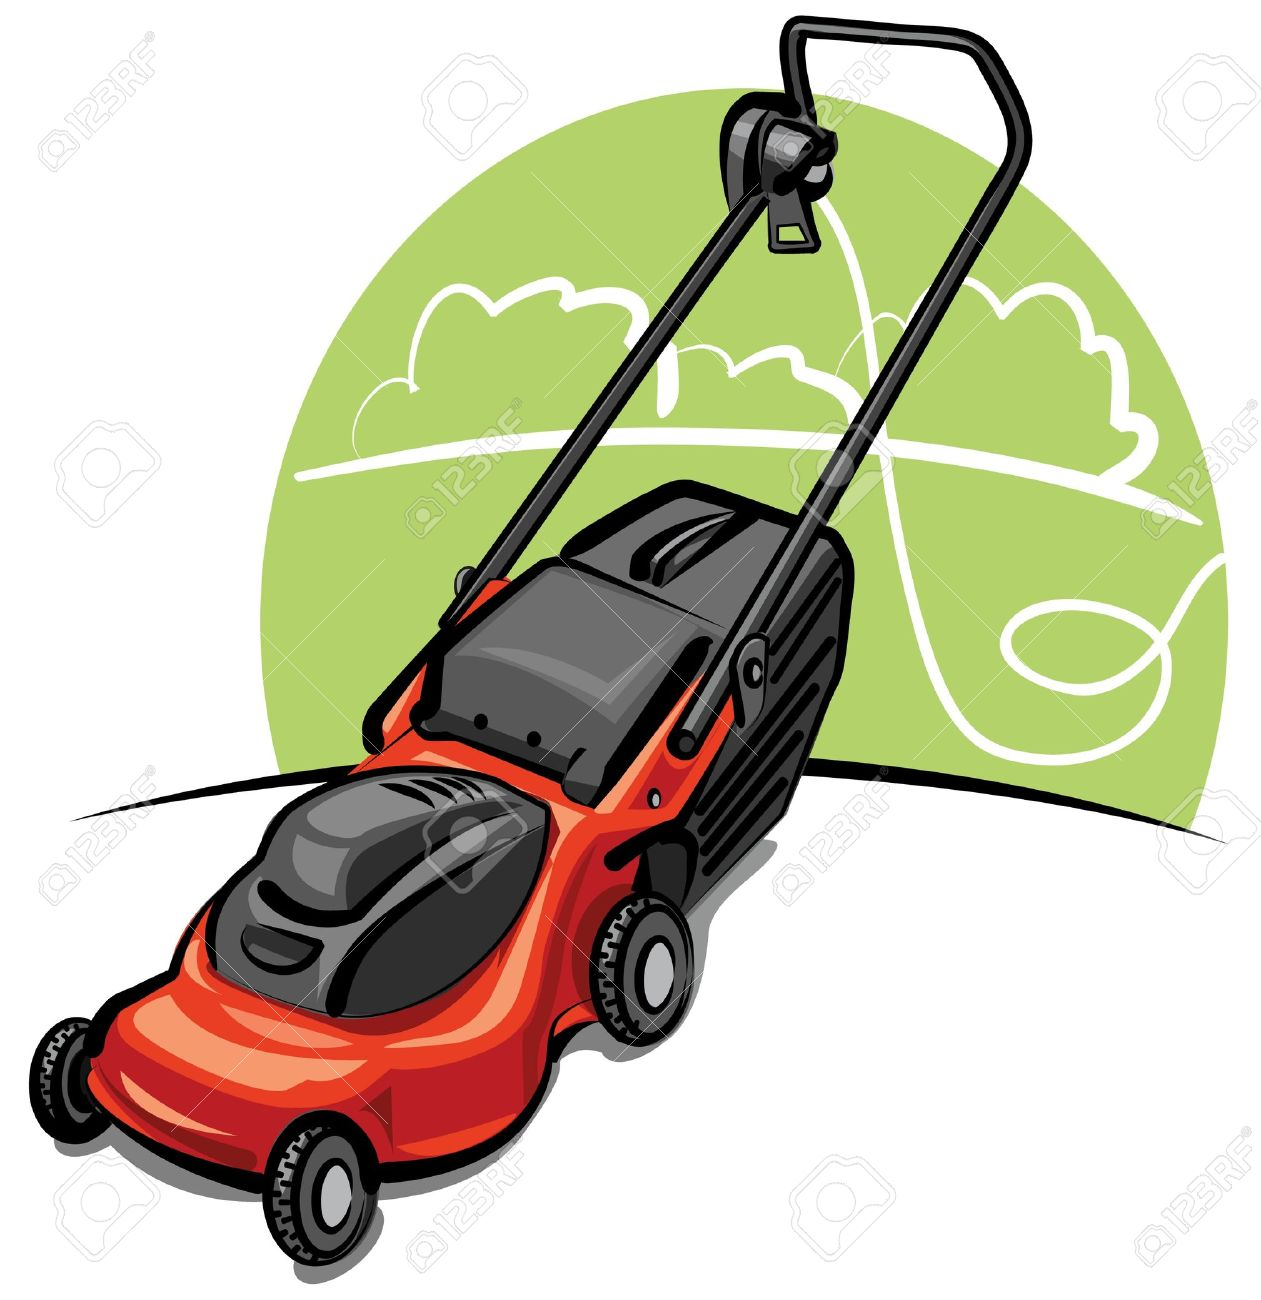 Lawn Mower Royalty Free Cliparts Vectors And Stock Illustration Image 9655556